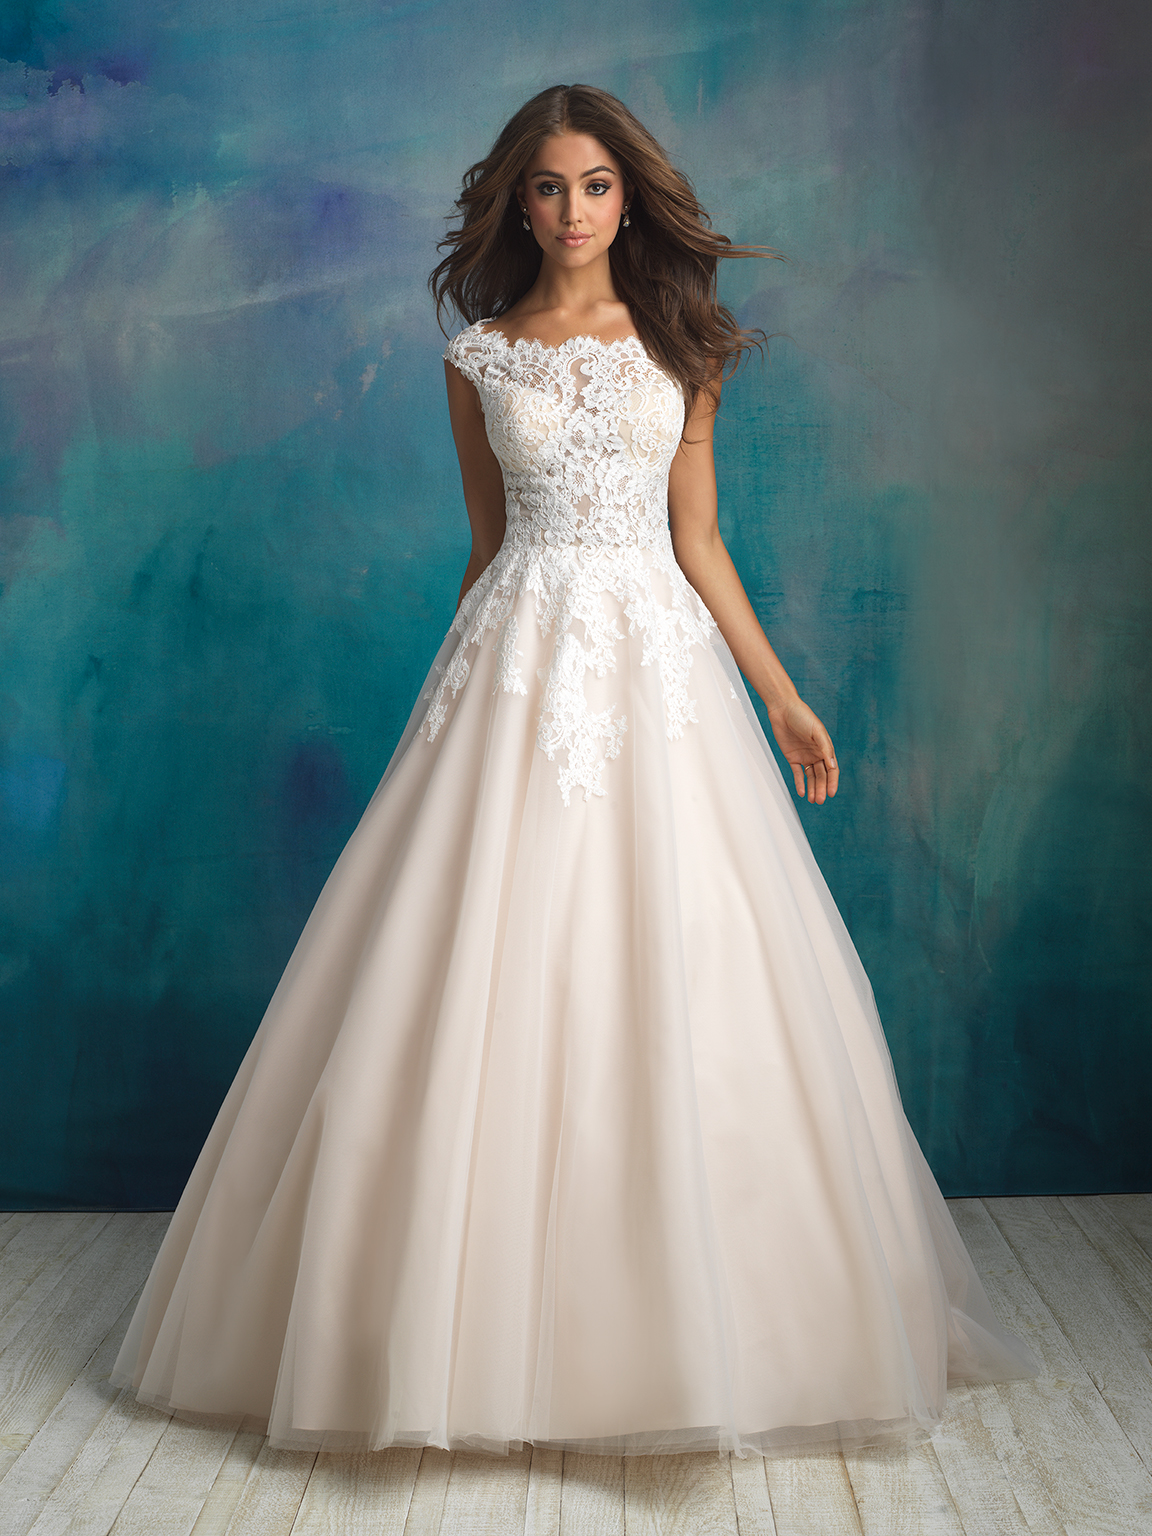 Classic Mermaid Wedding Dress | Kleinfeld Bridal